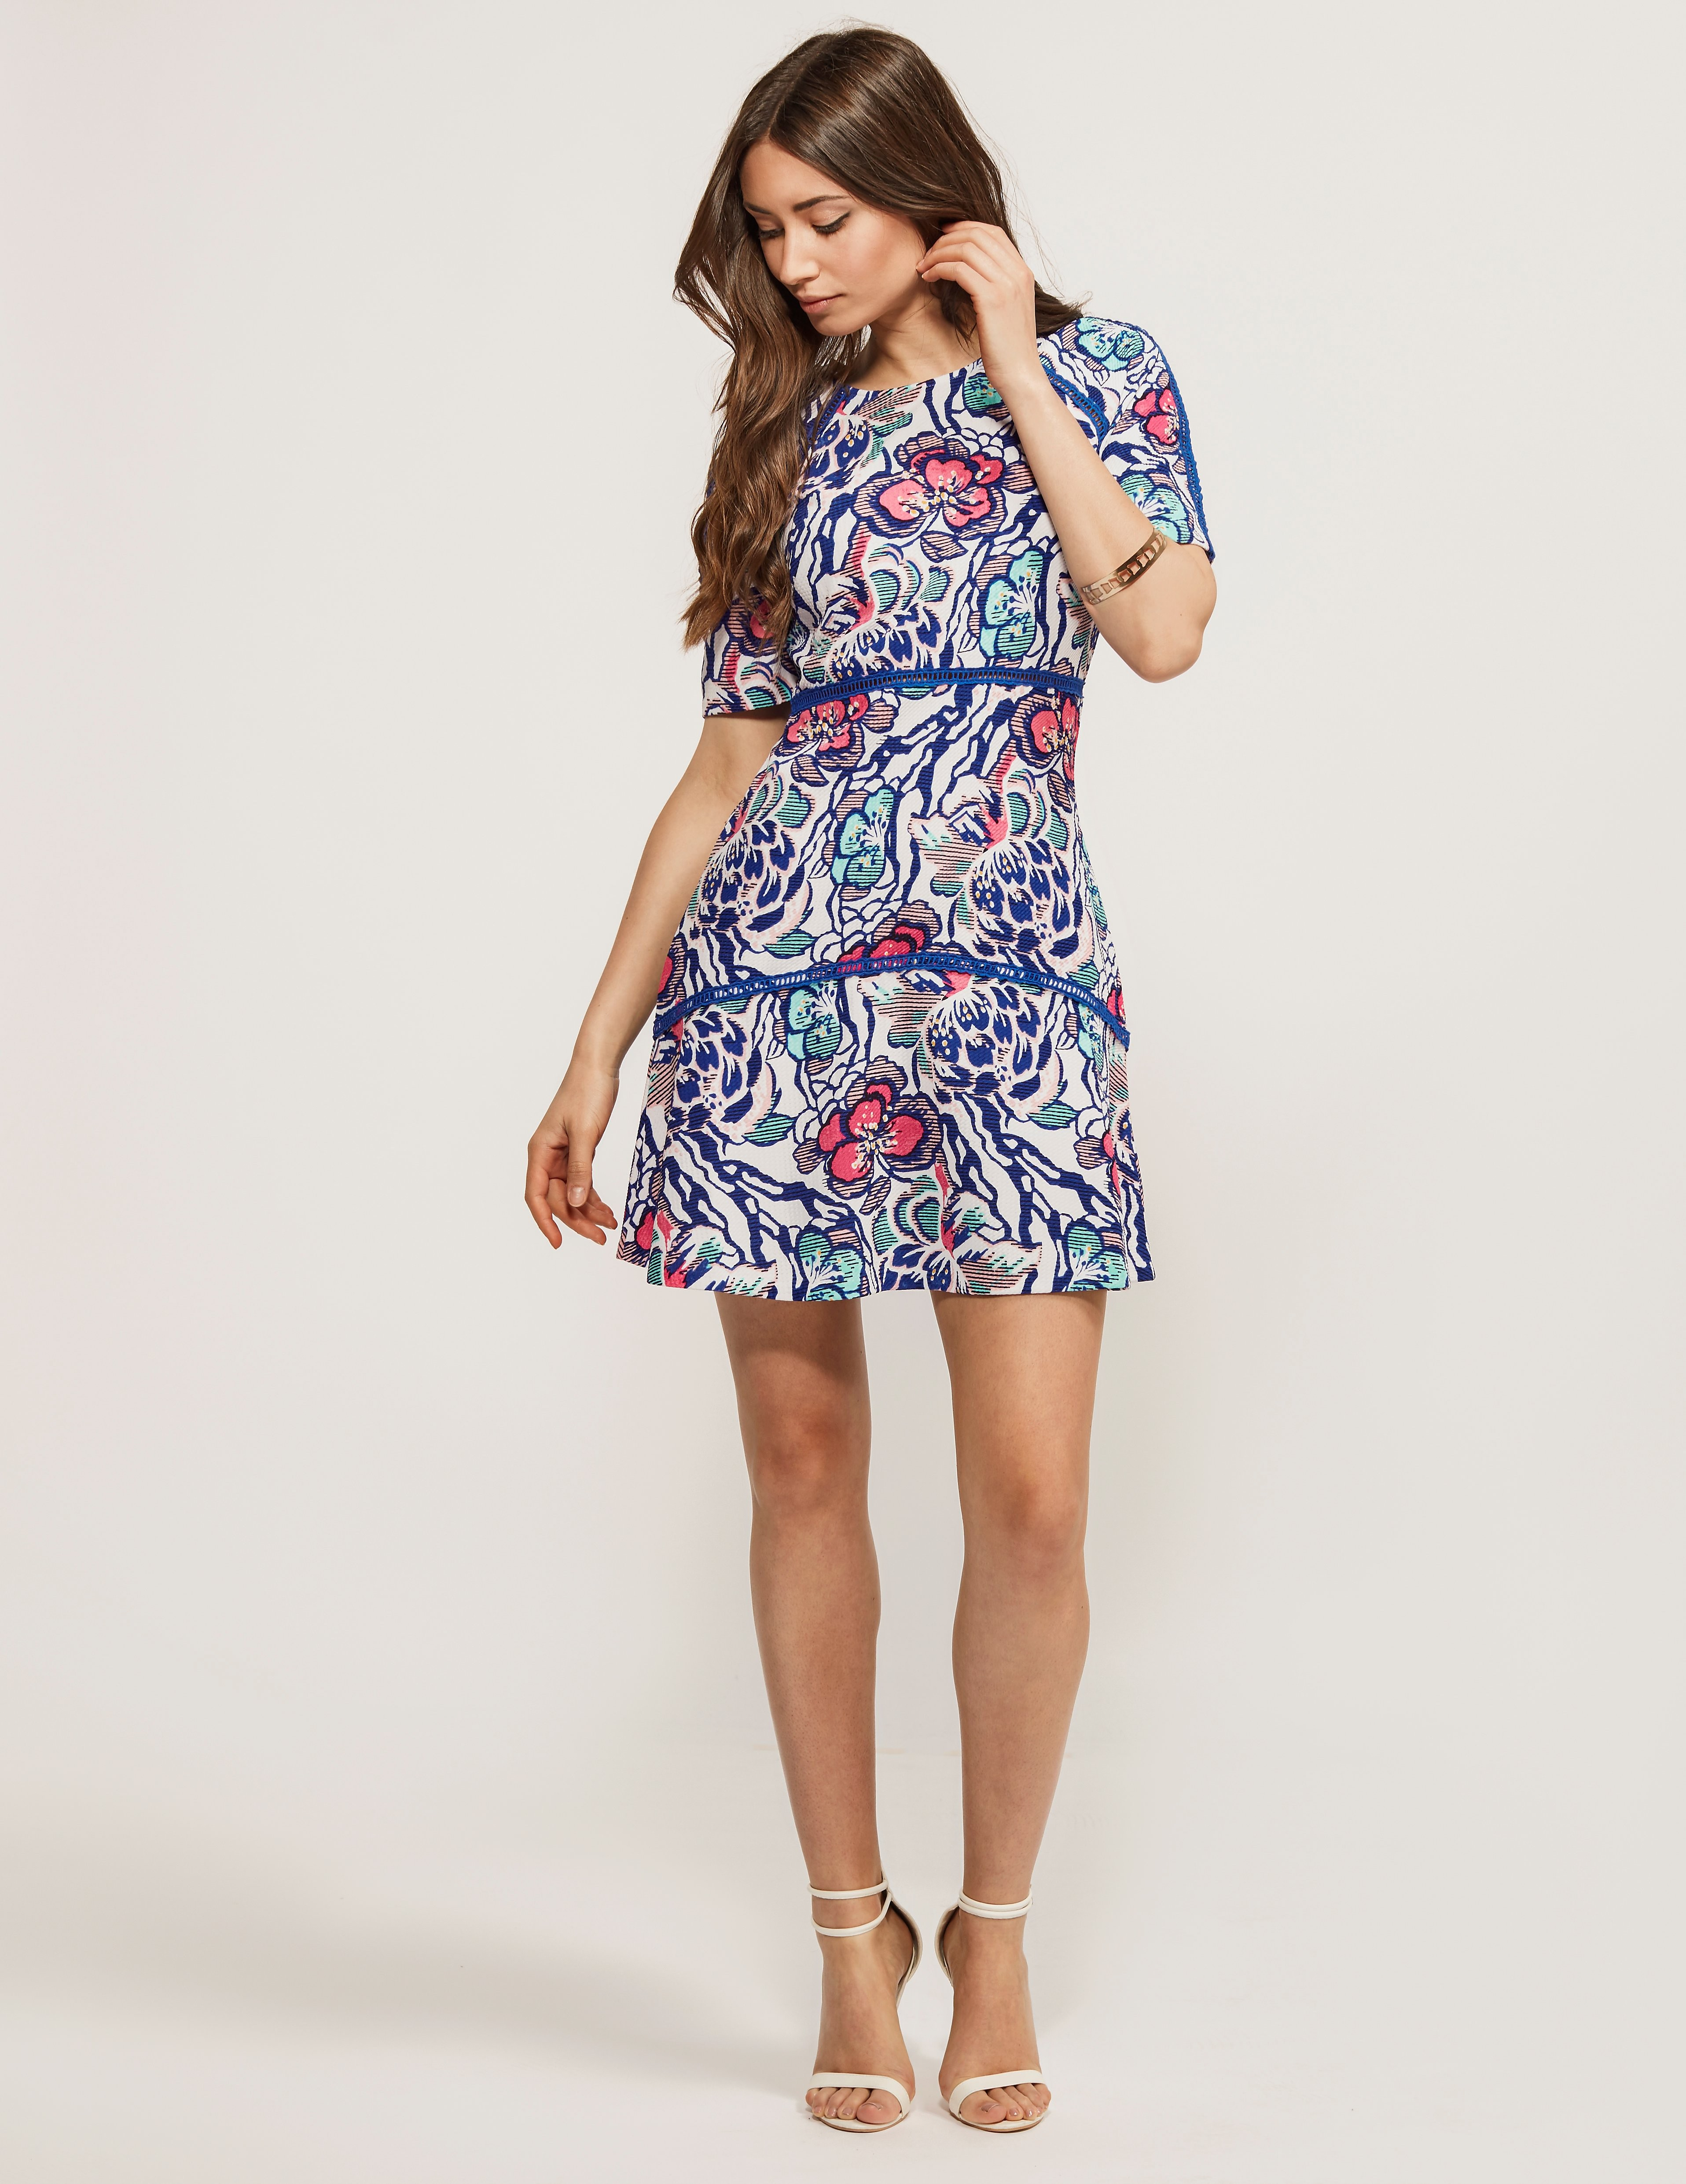 Juicy Couture Jac Bella Donna Floral Dress